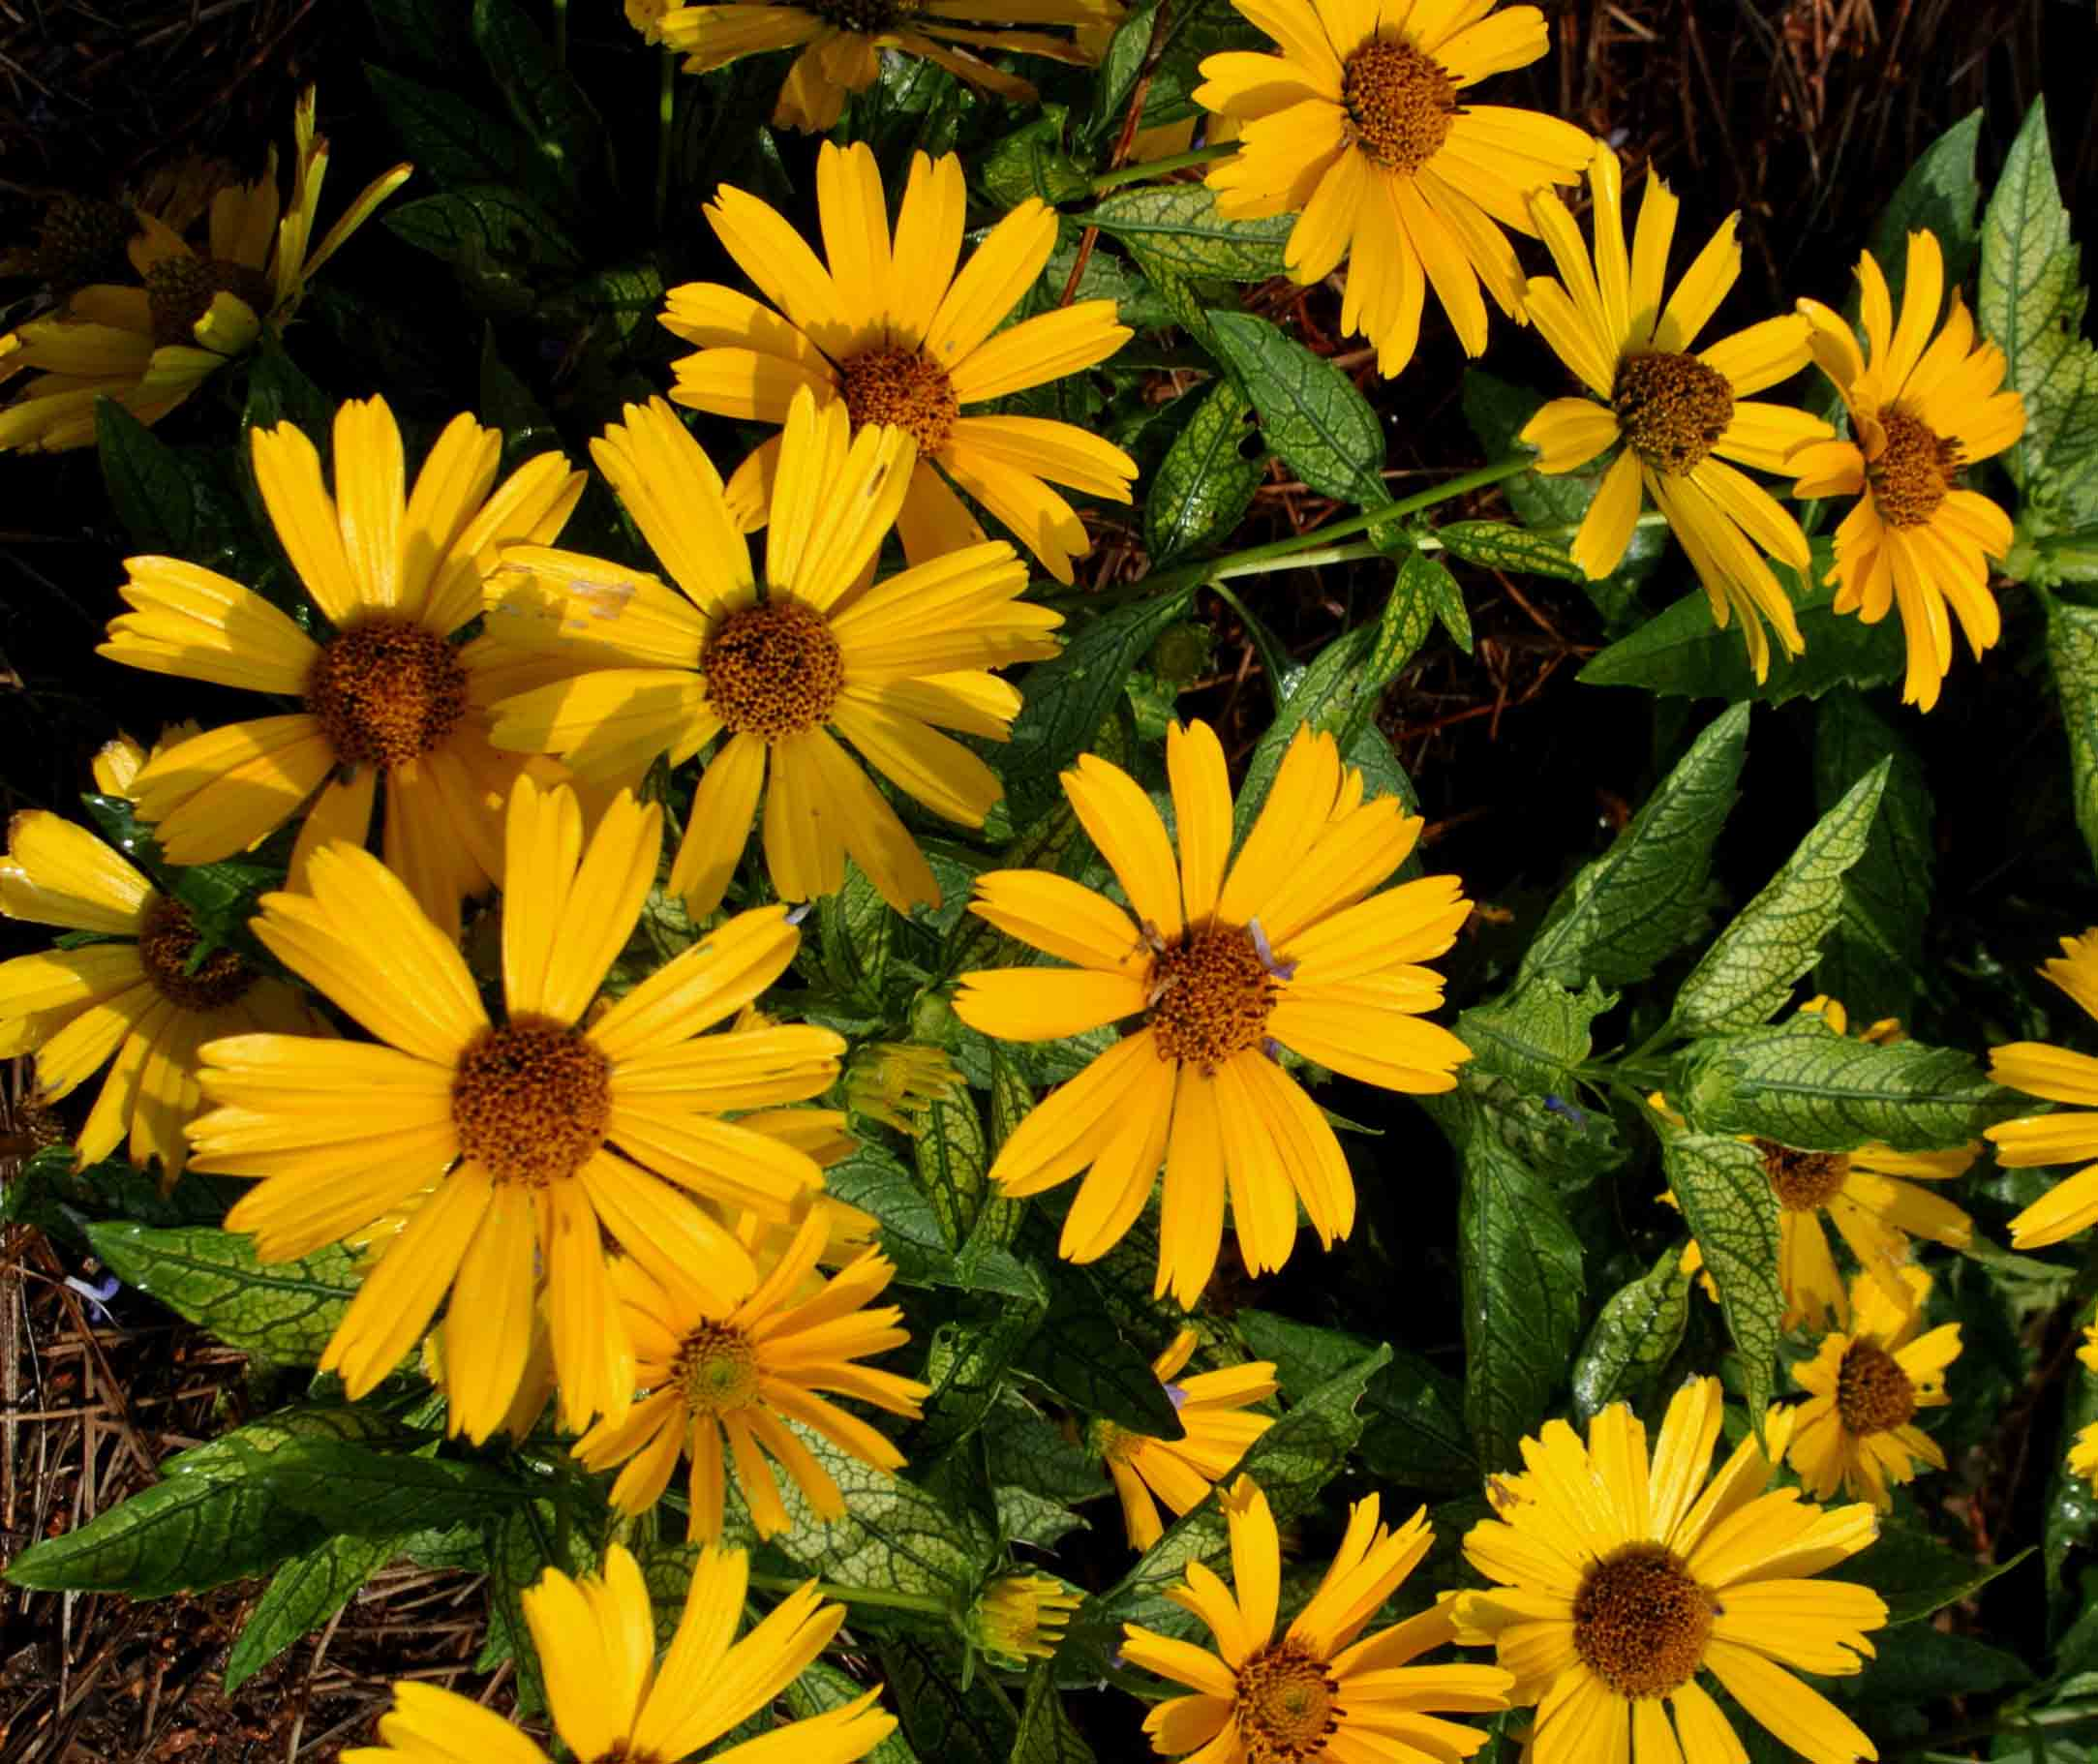 """'Sunstruck' heliopsis grew to a mere 6 inches in height. Its leaves are variegated and they accentuate the large yellow flowers well. These plants withstood our heat and humidity and performed beautifully."""